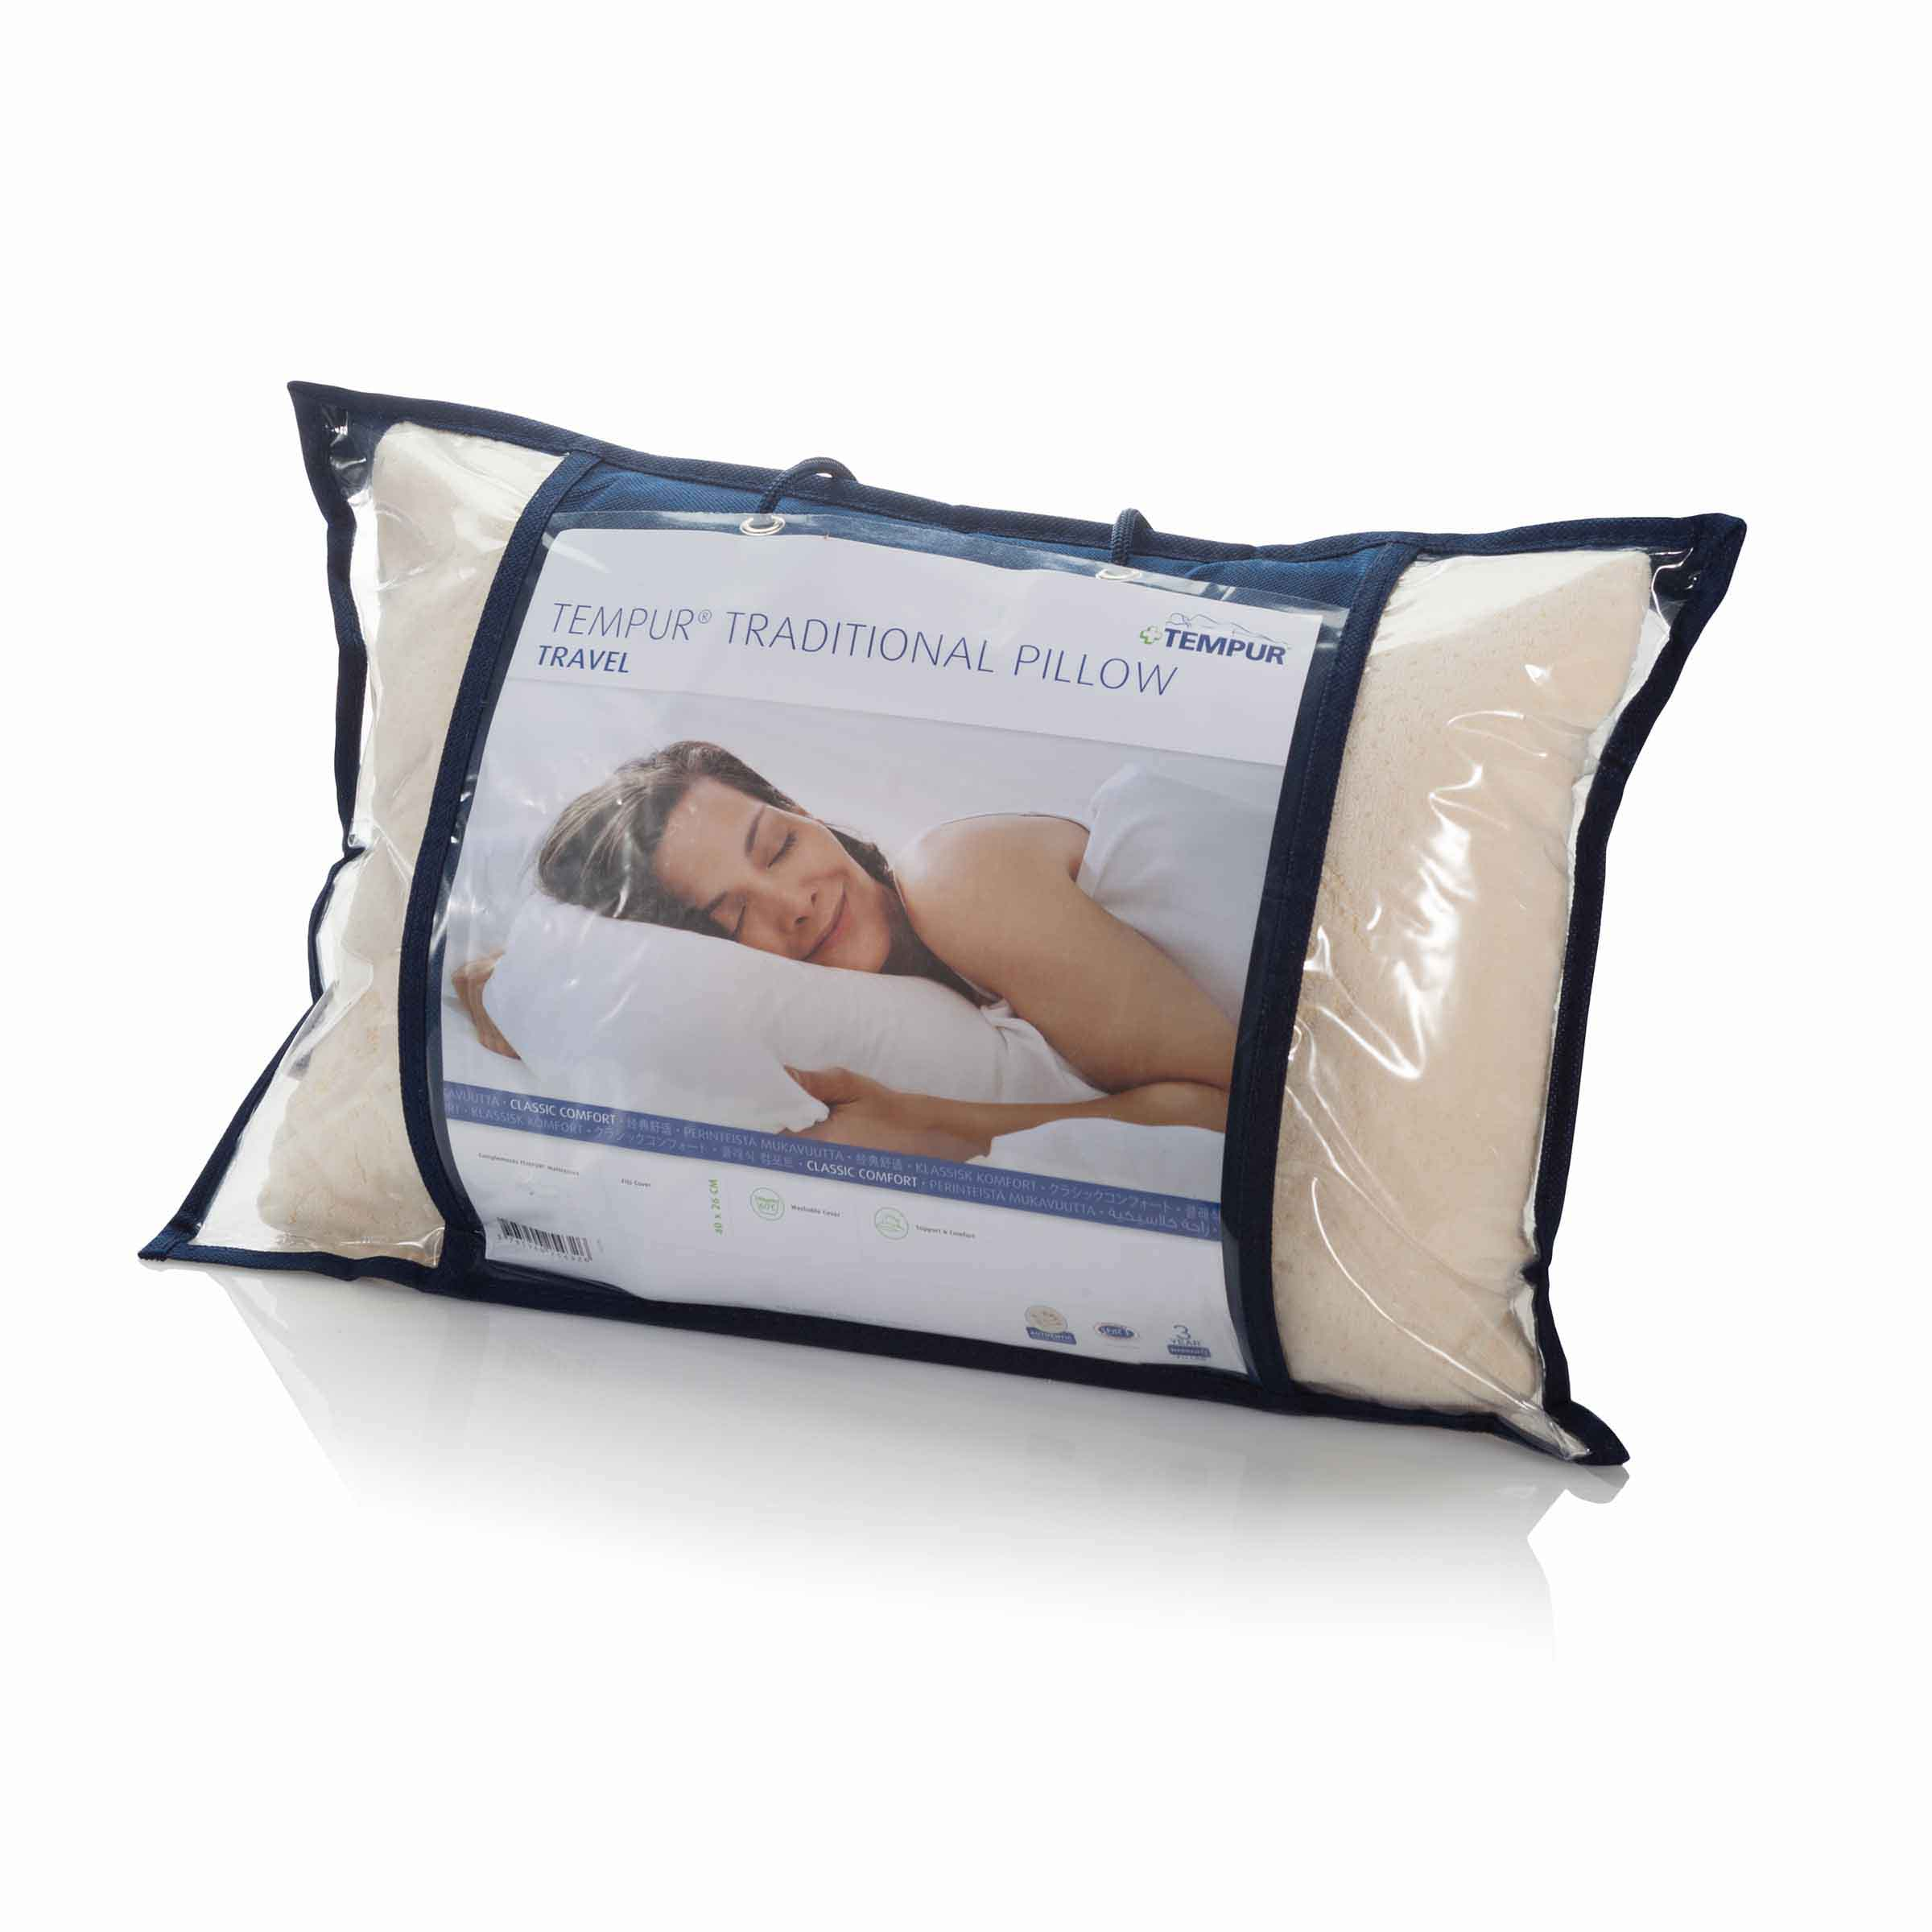 Tempur Traditional Pillow John Lewis : How to get a posh Tempur travel pillow totally free (normally ?65) - MoneySavingExpert.com Deals ...